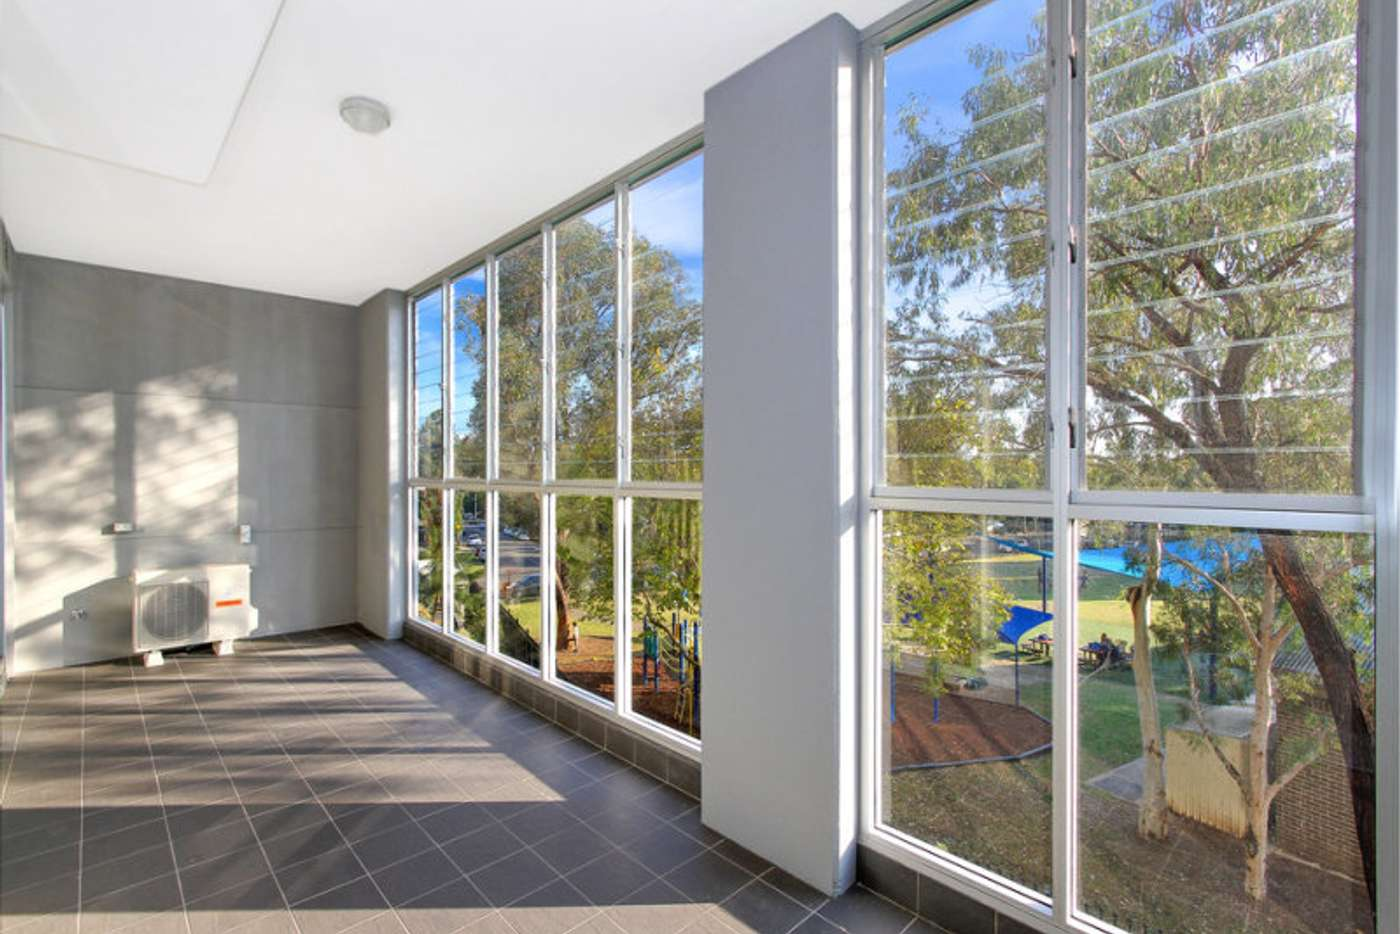 Main view of Homely apartment listing, 461 Church Street, Parramatta NSW 2150